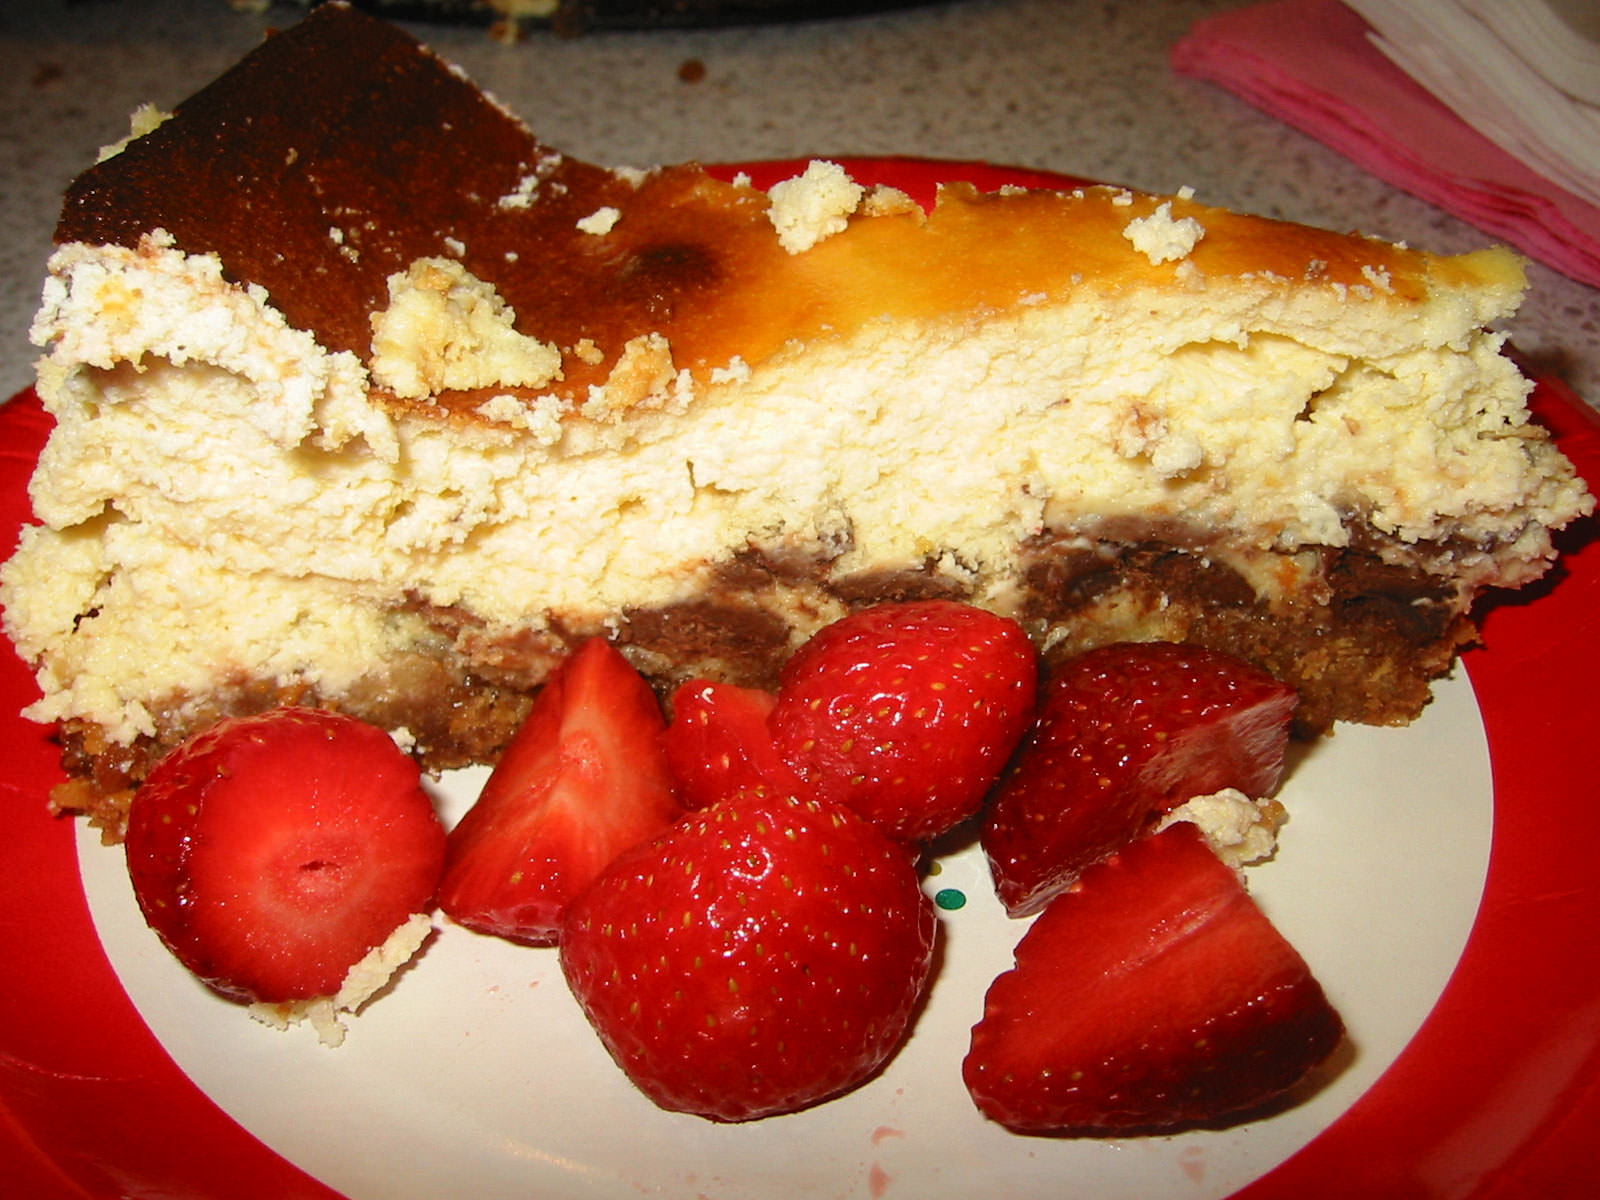 A slice of baked chocolate cheese cake with strawberries